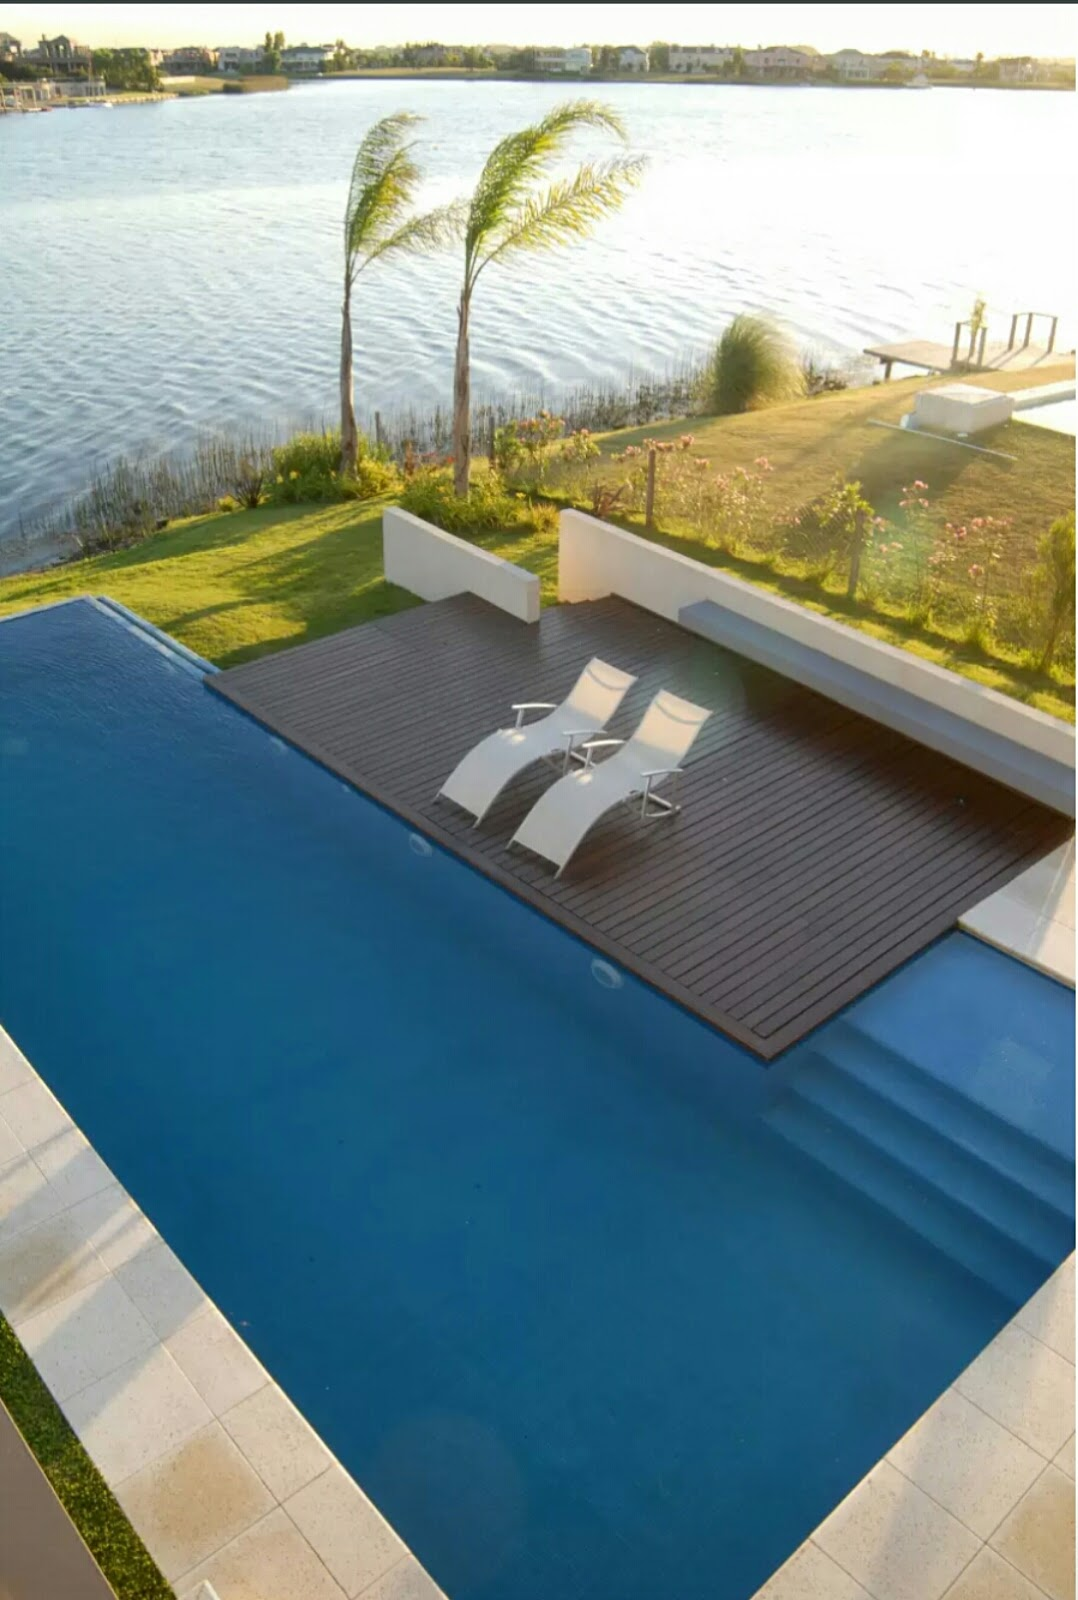 Did you love swimming but no time to go outside for outing because of busy days? And this is the best idea to build your own backyard swimming pool, hassle free to schedule your busy days for outing and for sure your family can enjoy swimming especially this summer. See images below for more swimming pool design ideas.